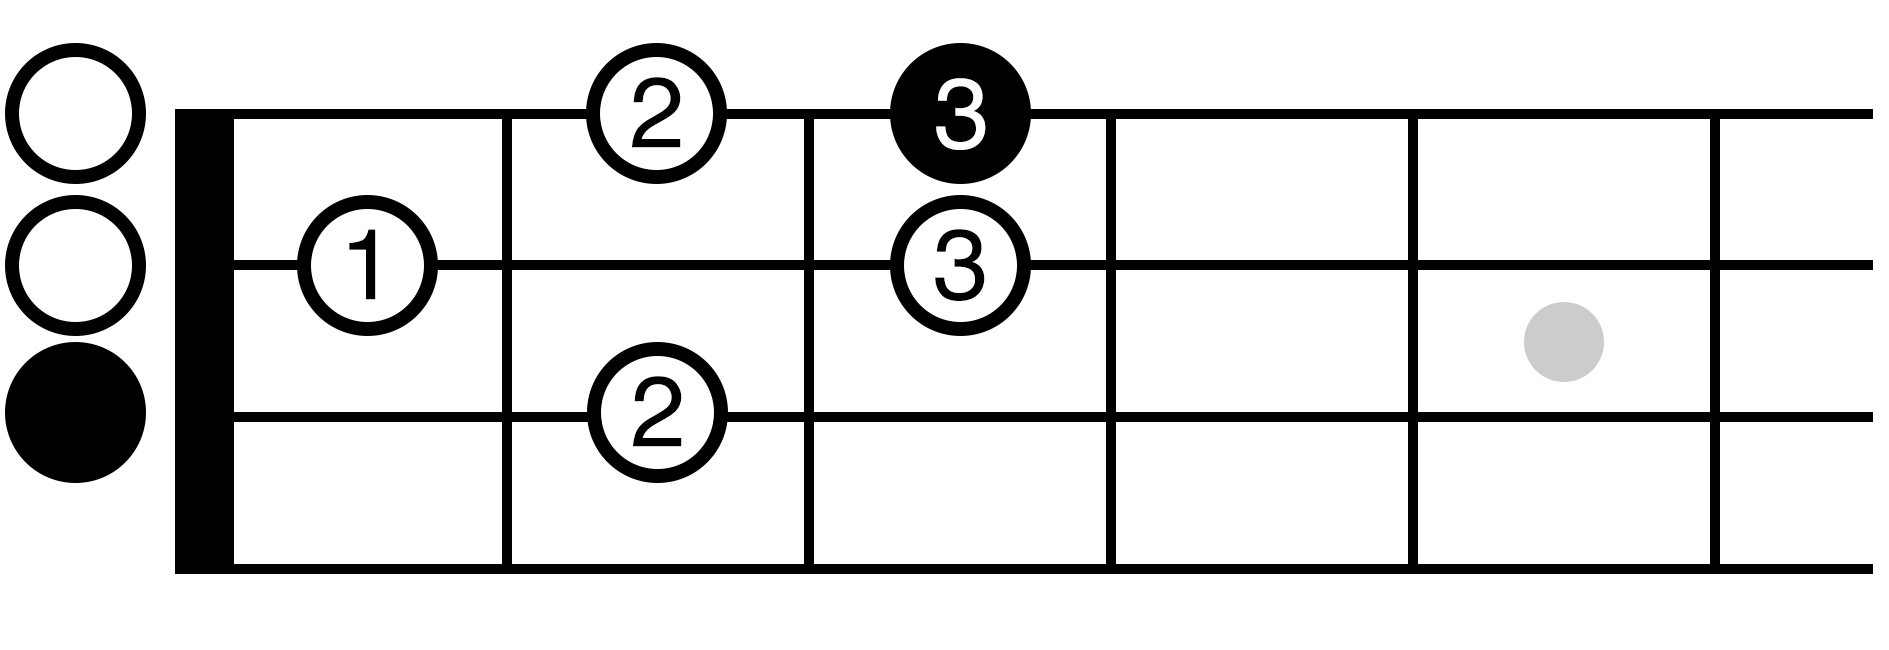 Learn ukulele major scale theory and build a c major scale memorize this position and take it to heart as you pluck each note of the position say the note name out loud to put it to memory hexwebz Image collections